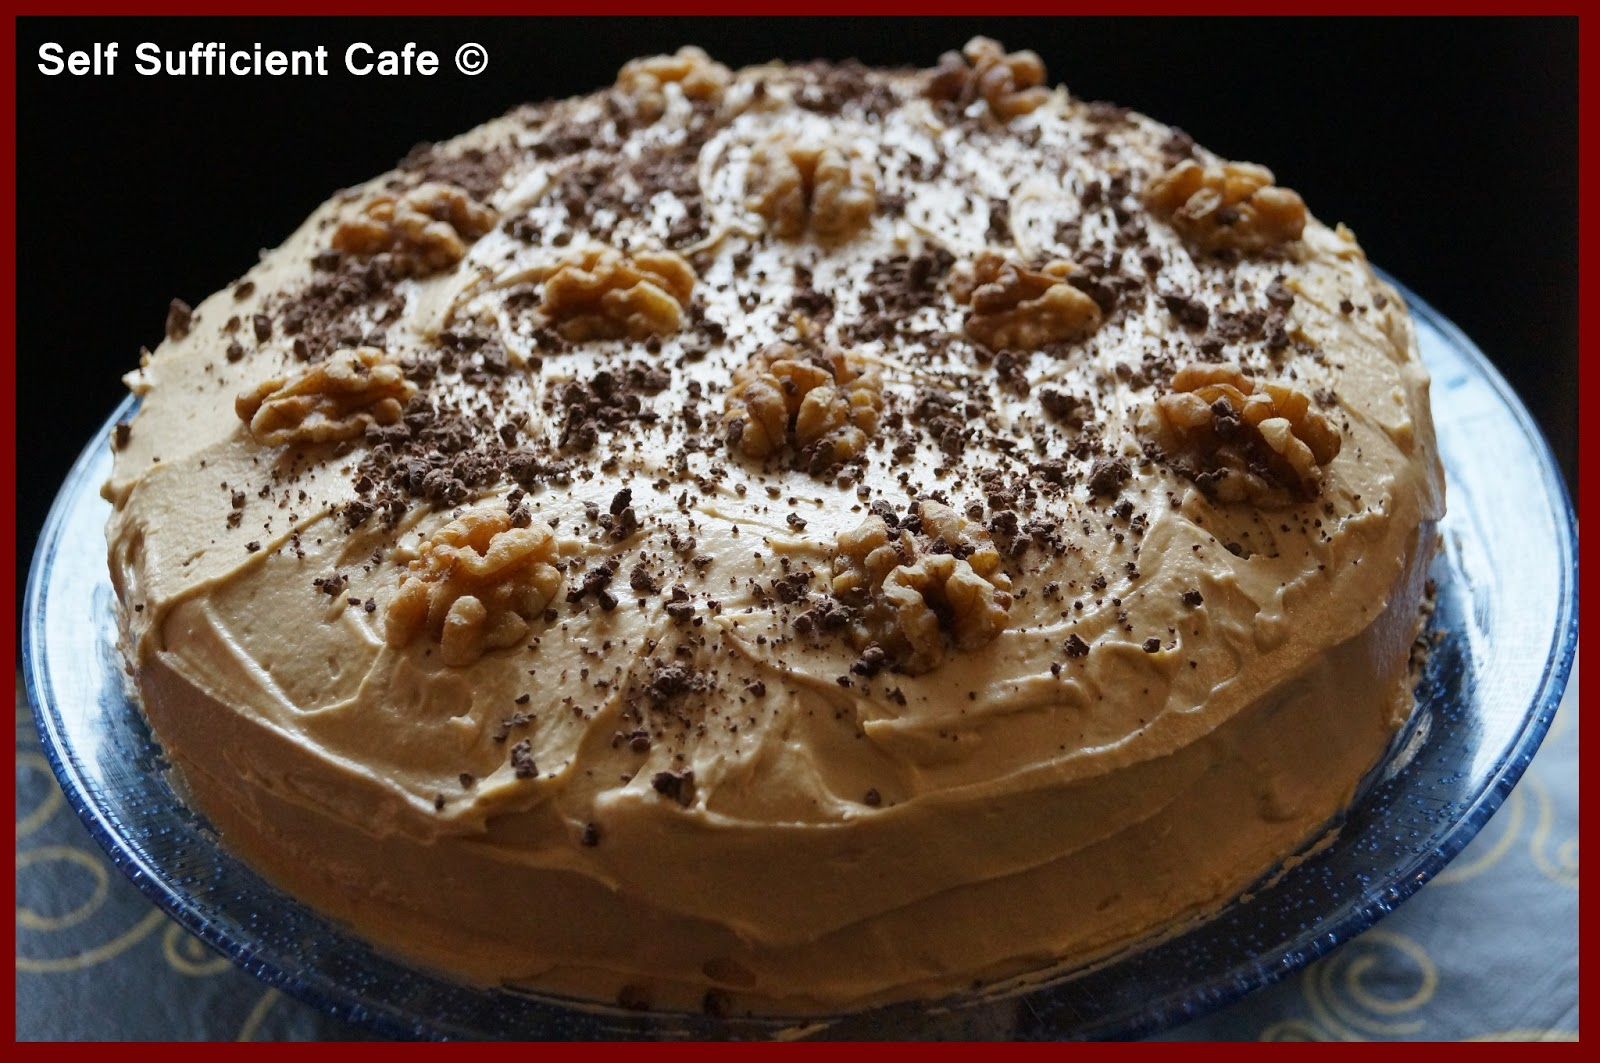 Self Sufficient Cafe Birthday Cakes